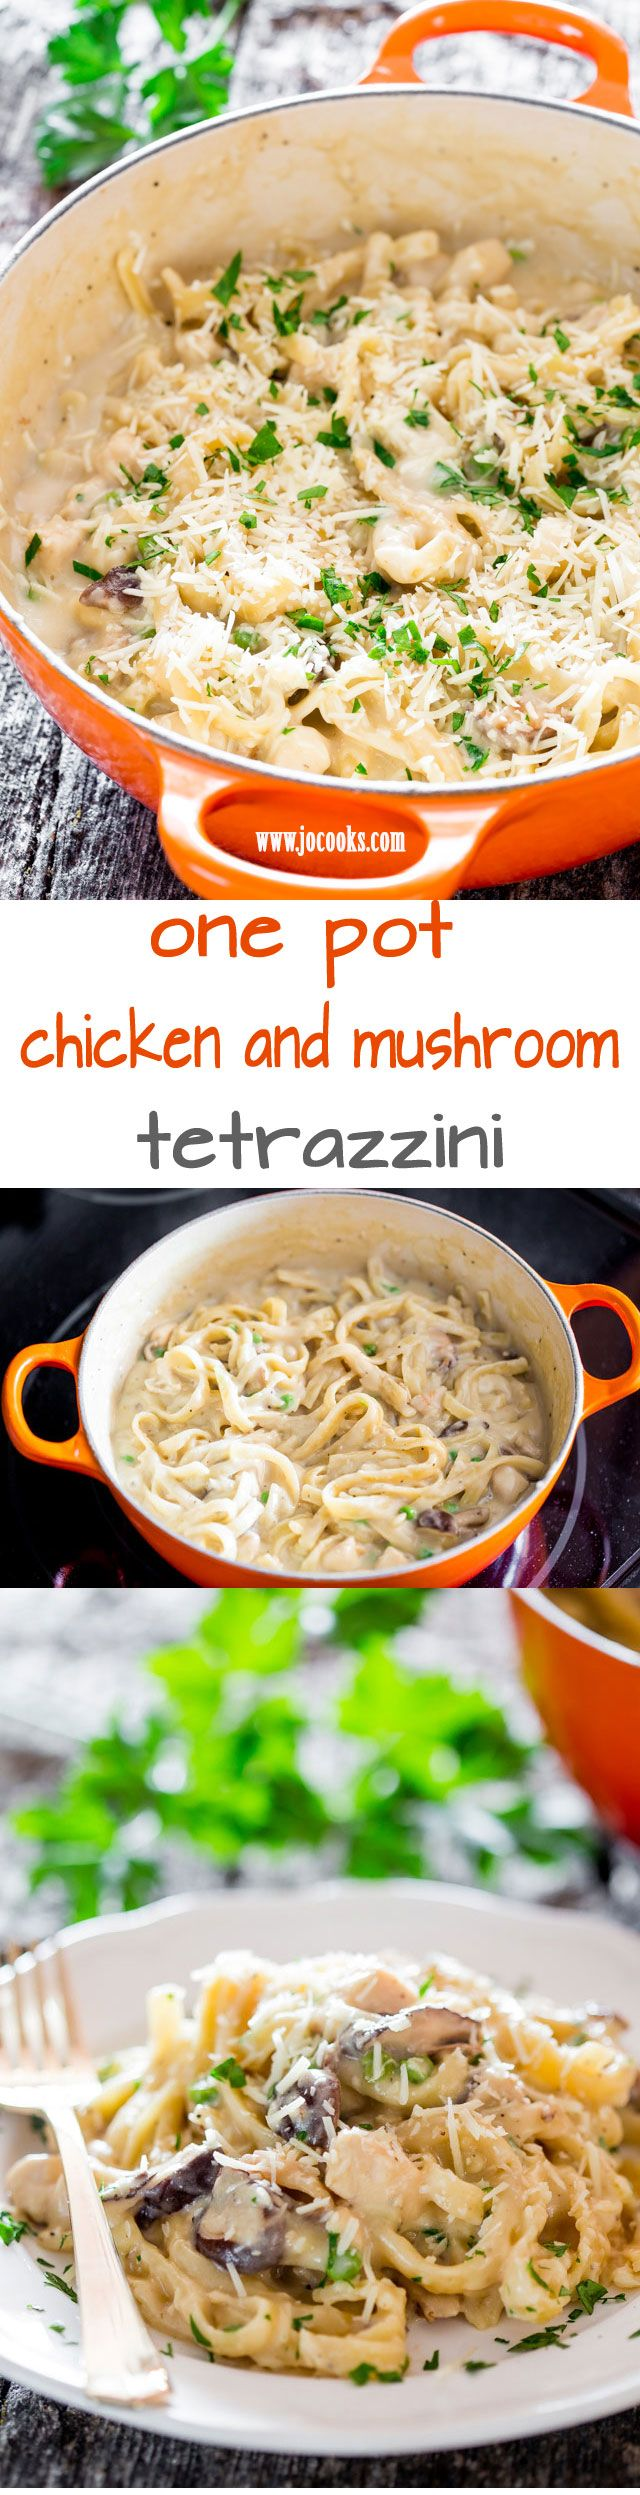 One Pot Chicken and Mushroom Tetrazzini - a simple but creamy, rich and delicious pasta dish with chicken and mushrooms ready in 35 minutes. Perfect for busy weeknights.